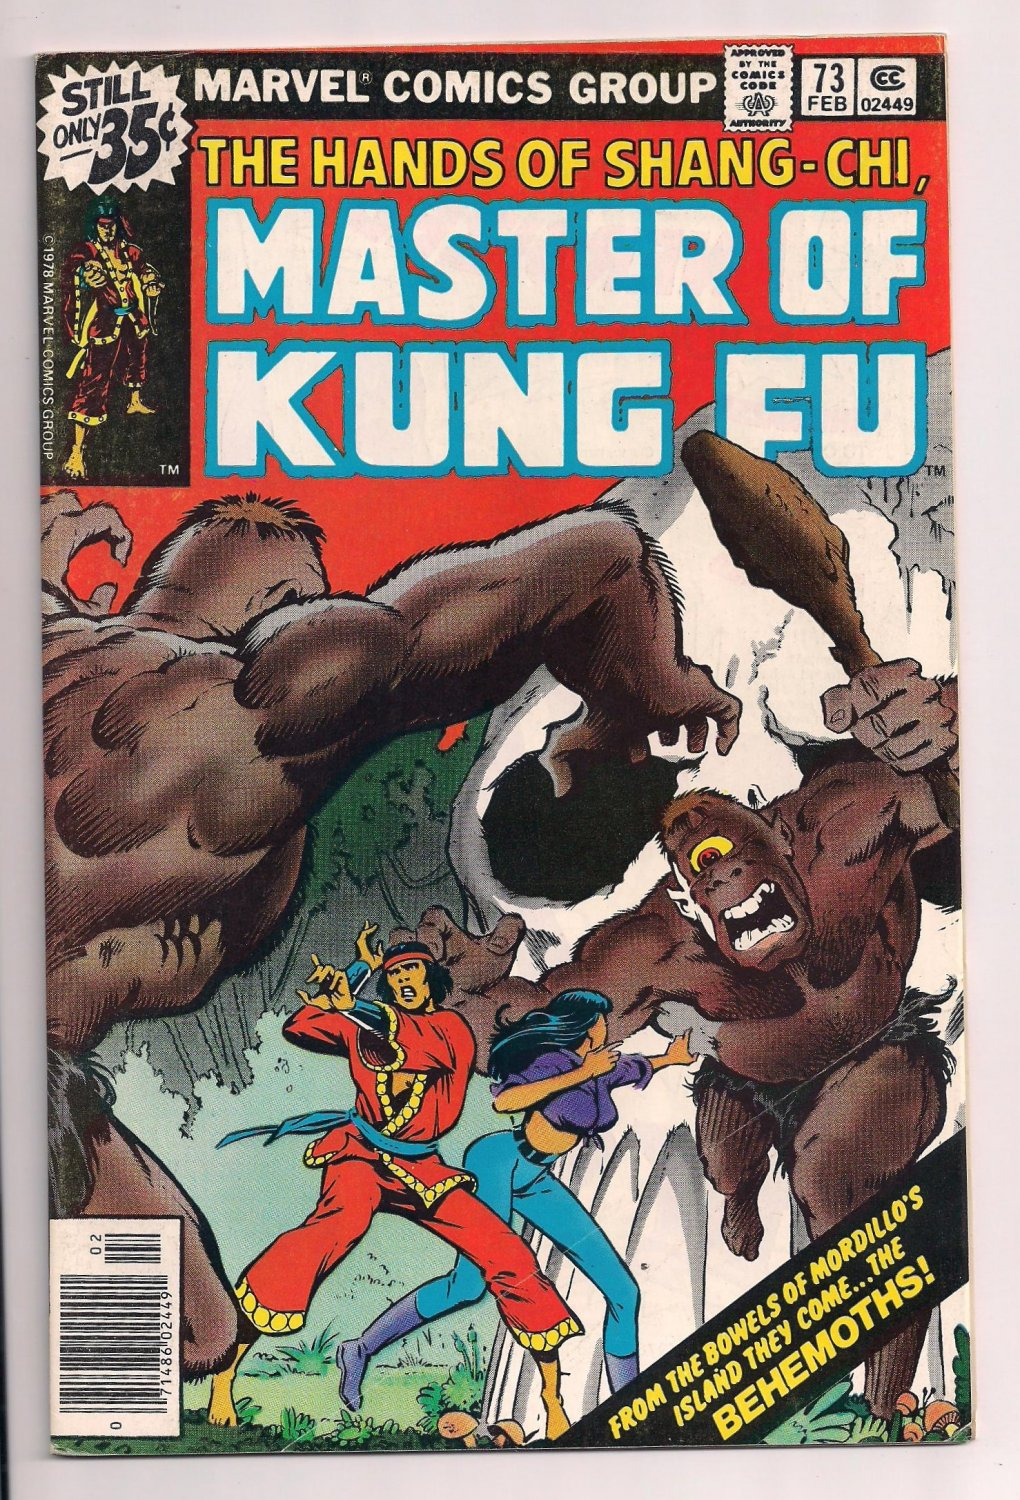 Shang-Chi, Master of Kung Fu #73 b (1979) very fine condition or better.